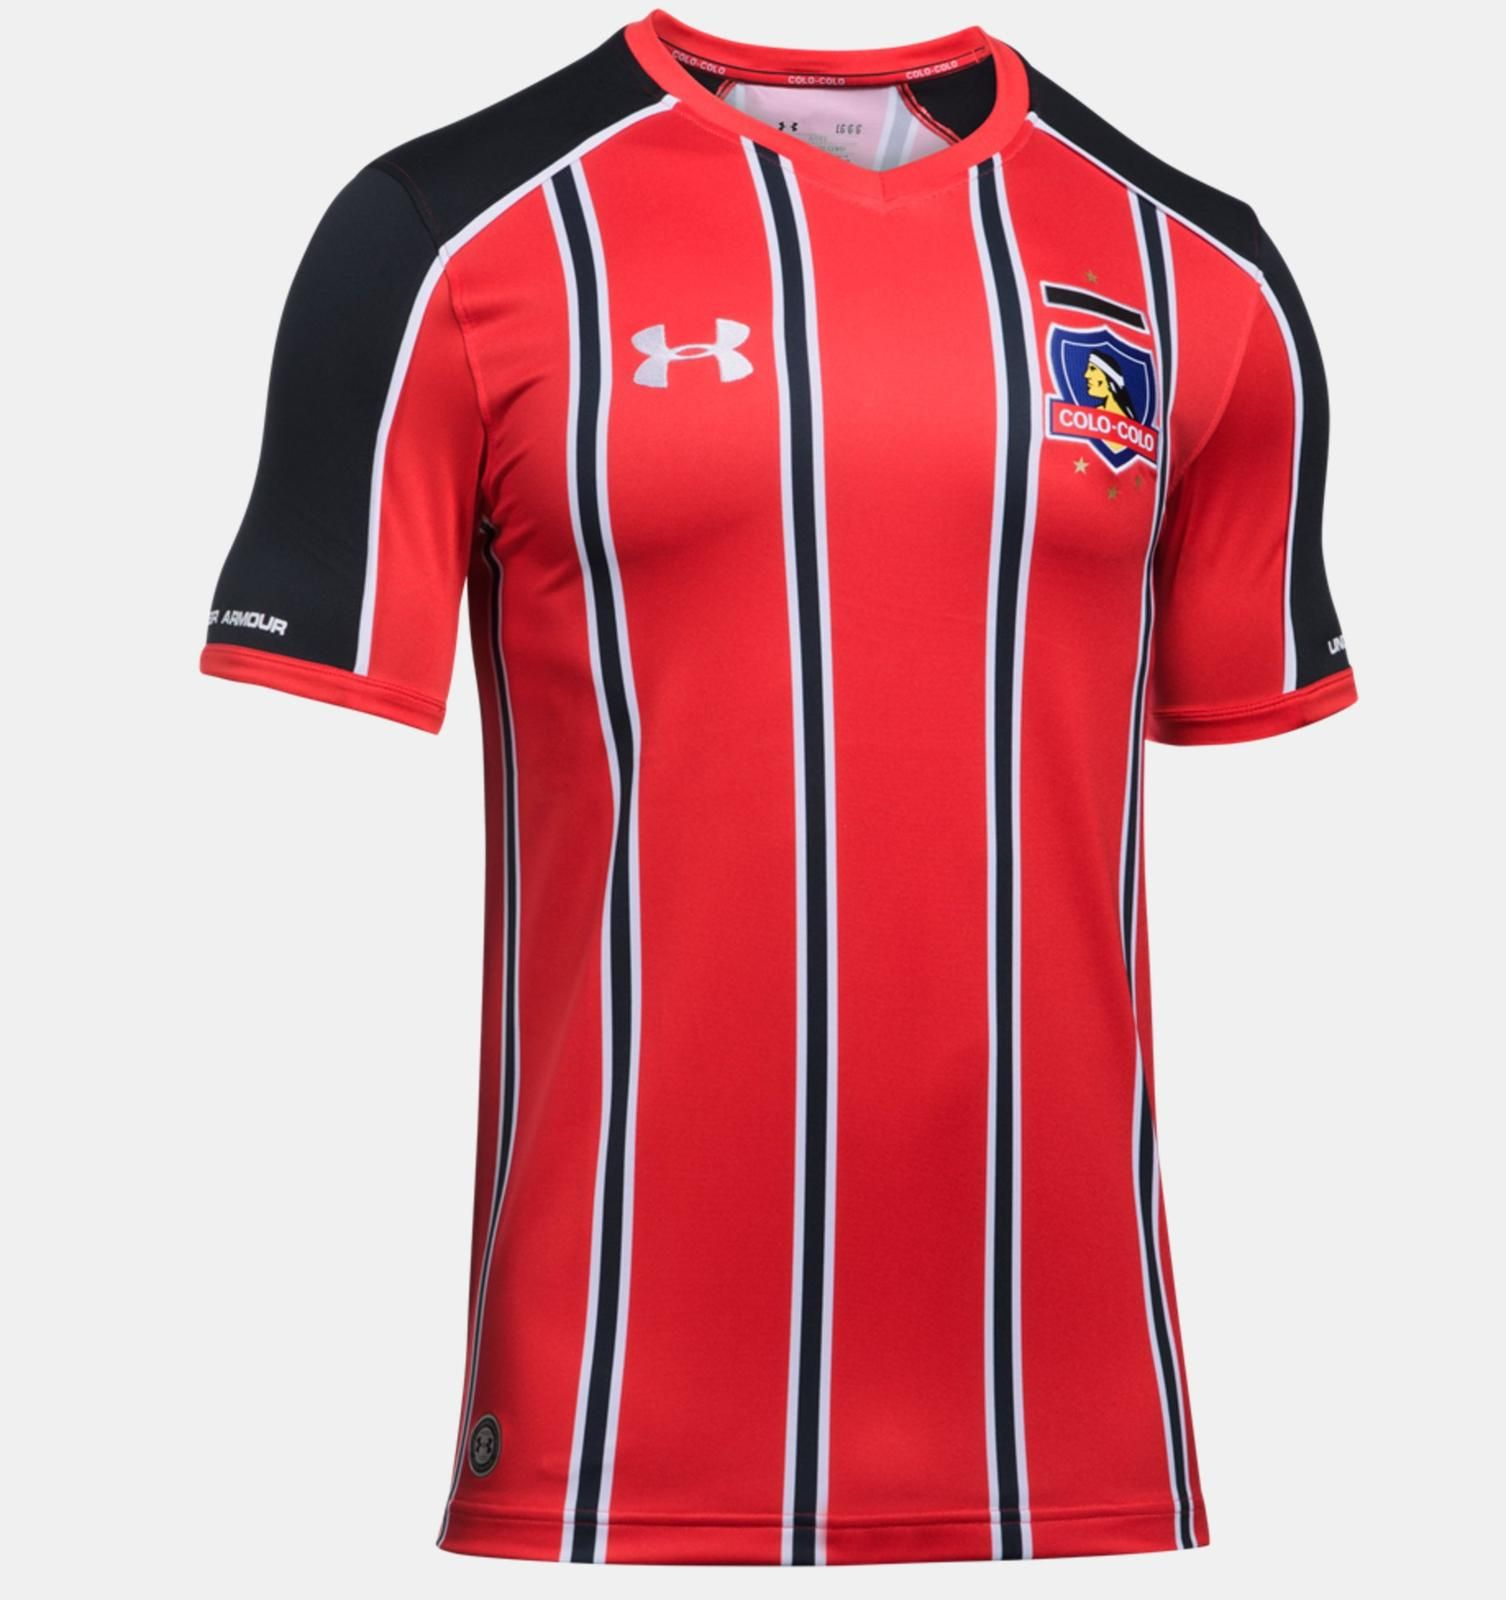 5029c4f3b The Colo-Colo 2017 third kit introduces a vibrant design in red ...